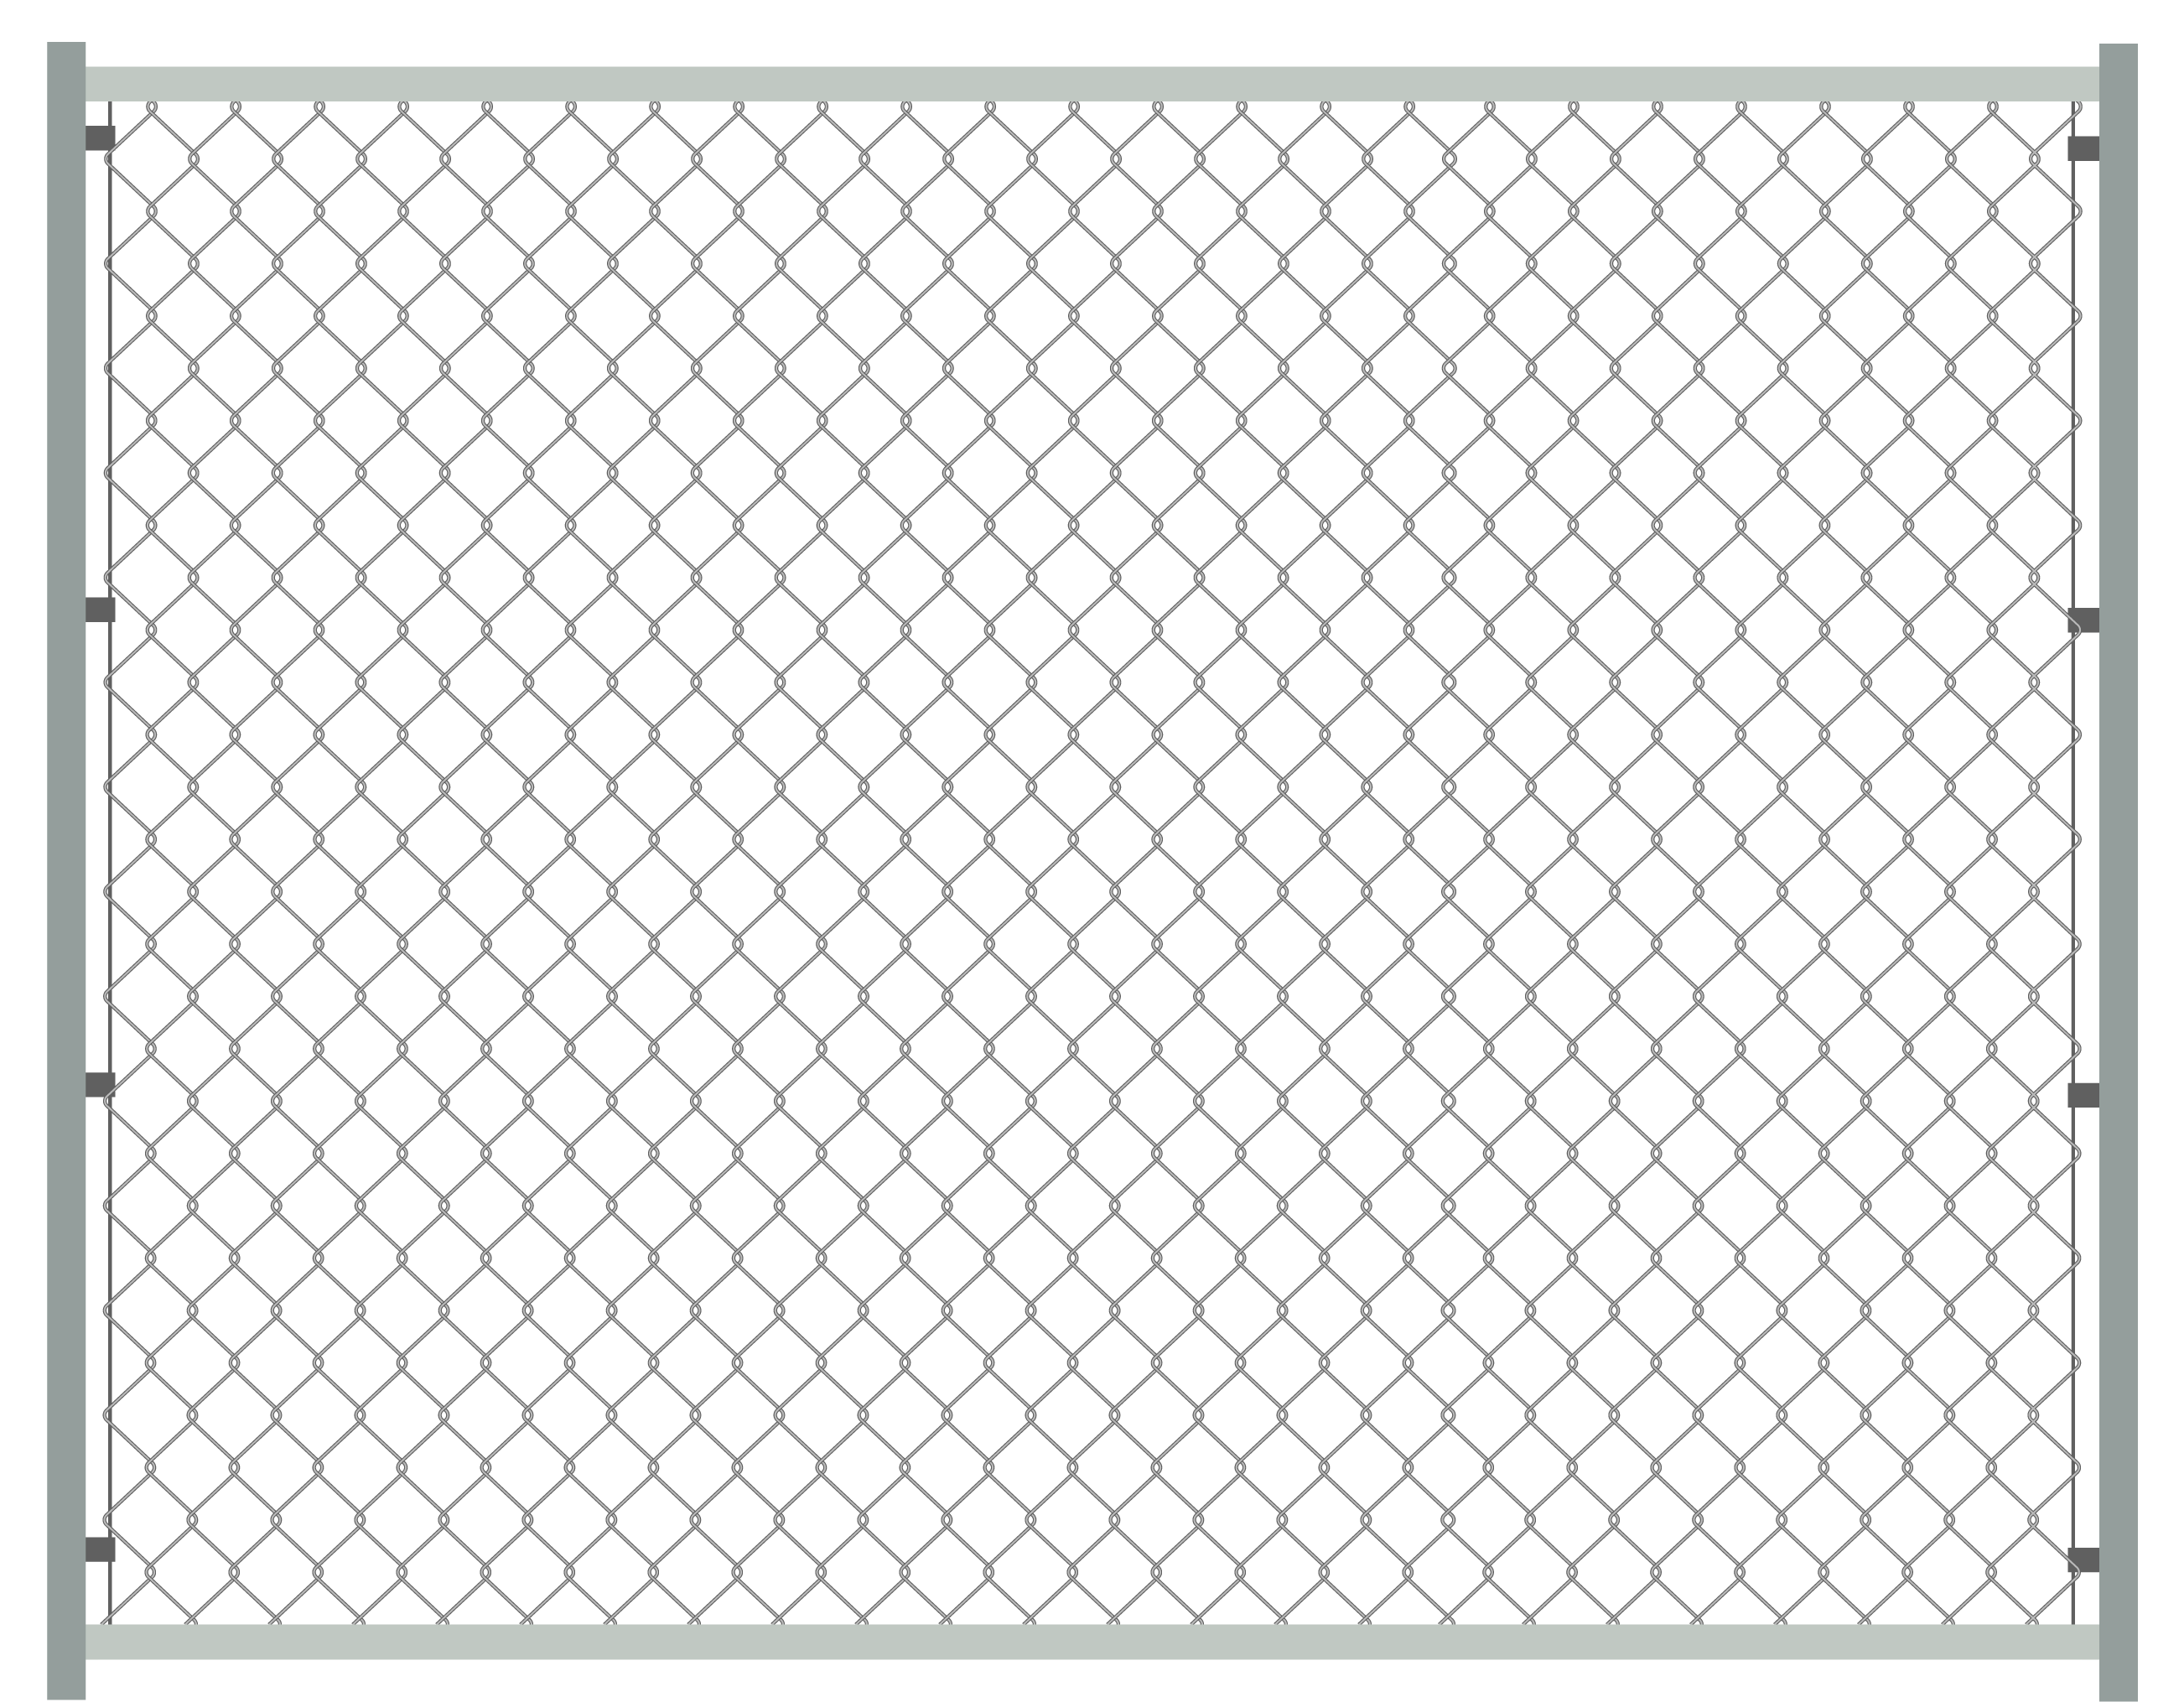 Broken chain link fence png. Images in collection page